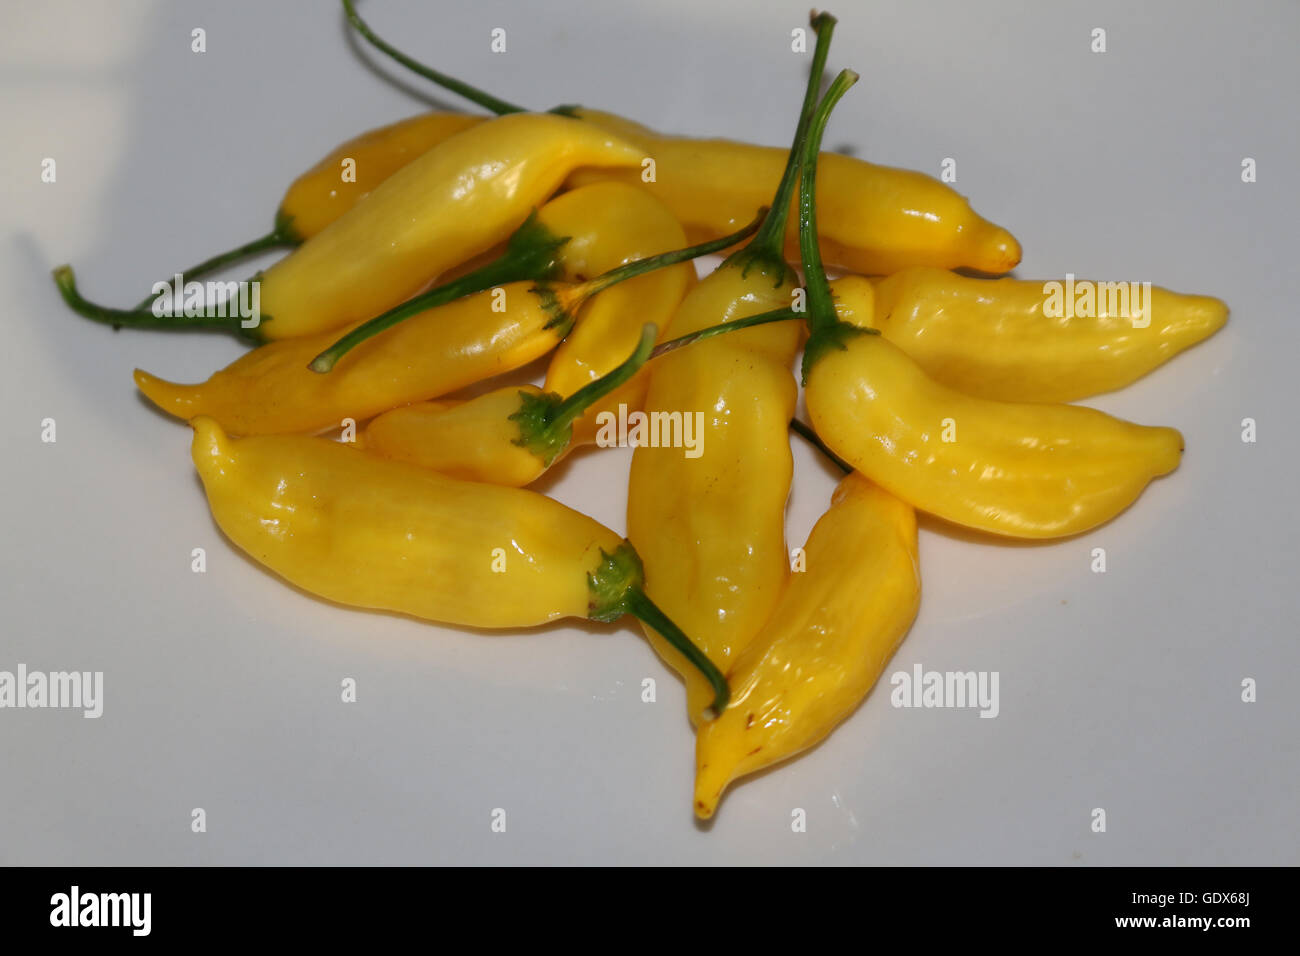 Fresh fruit of Chili  'Aji Limon' - Stock Image